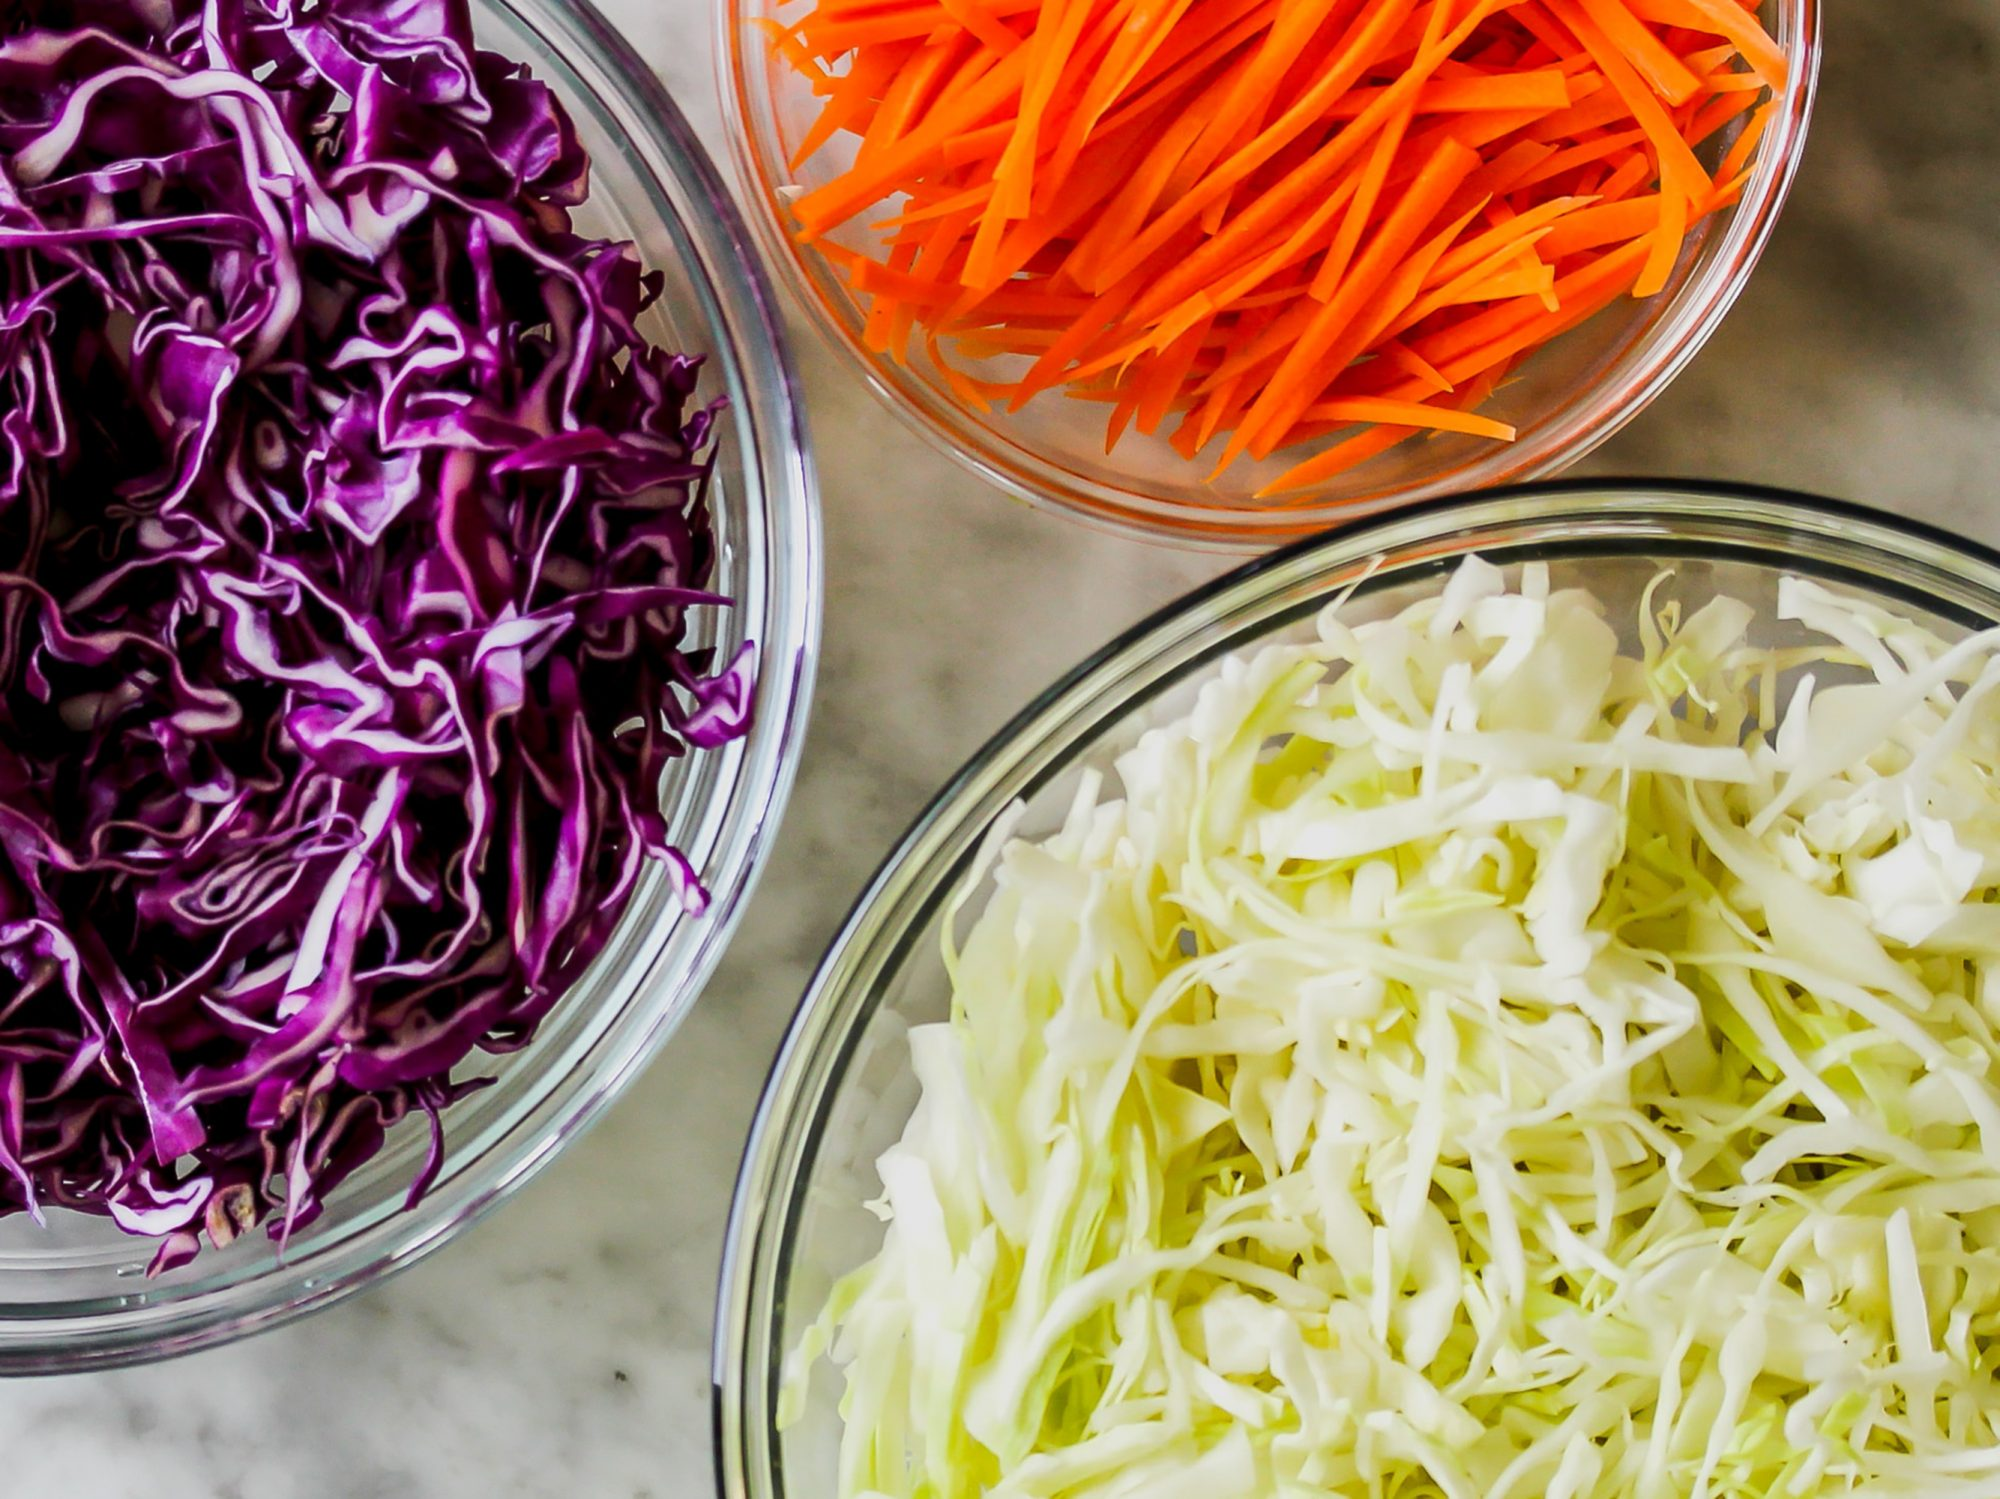 Basic Coleslaw Ingredients